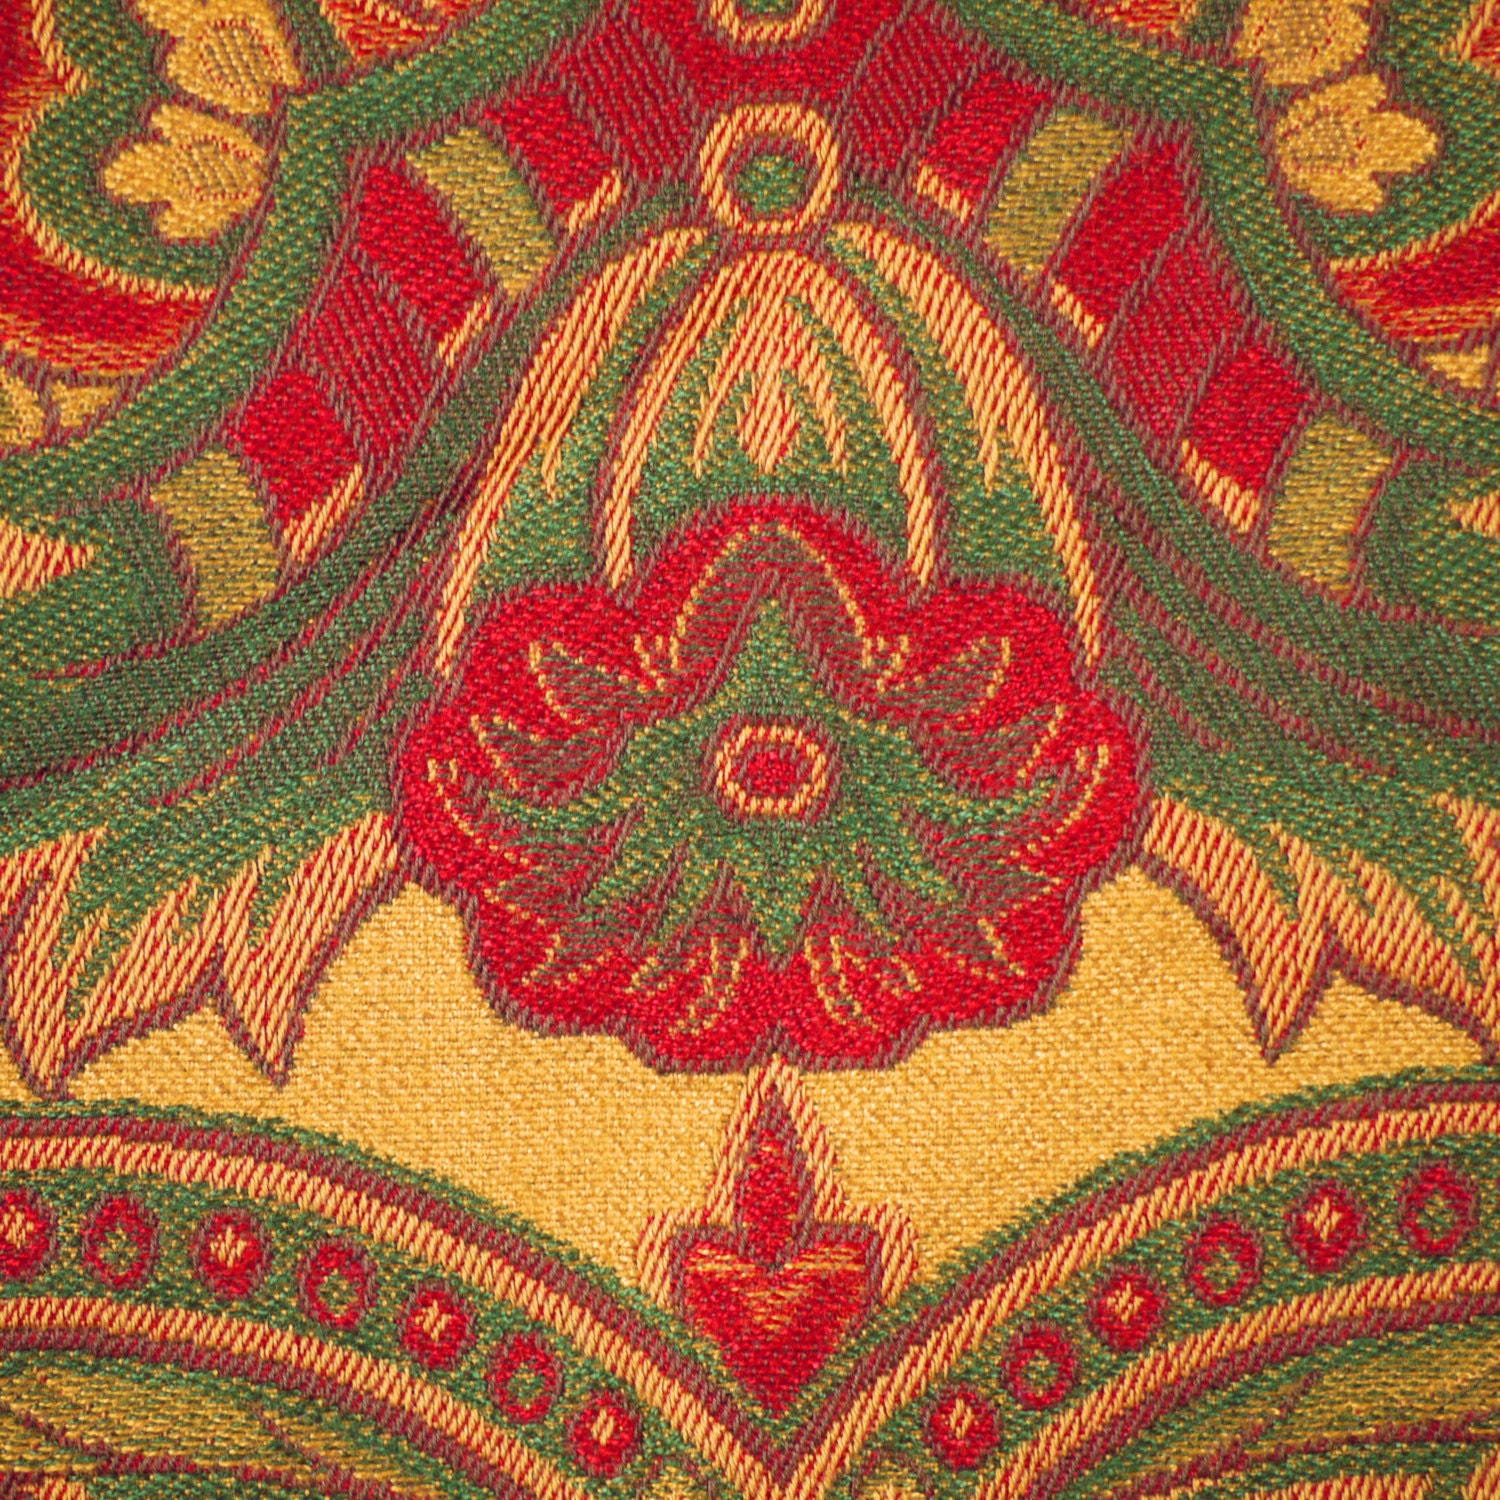 1 yard brocade red green gold paisley home decor or upholstery fabric large design heavy. Black Bedroom Furniture Sets. Home Design Ideas